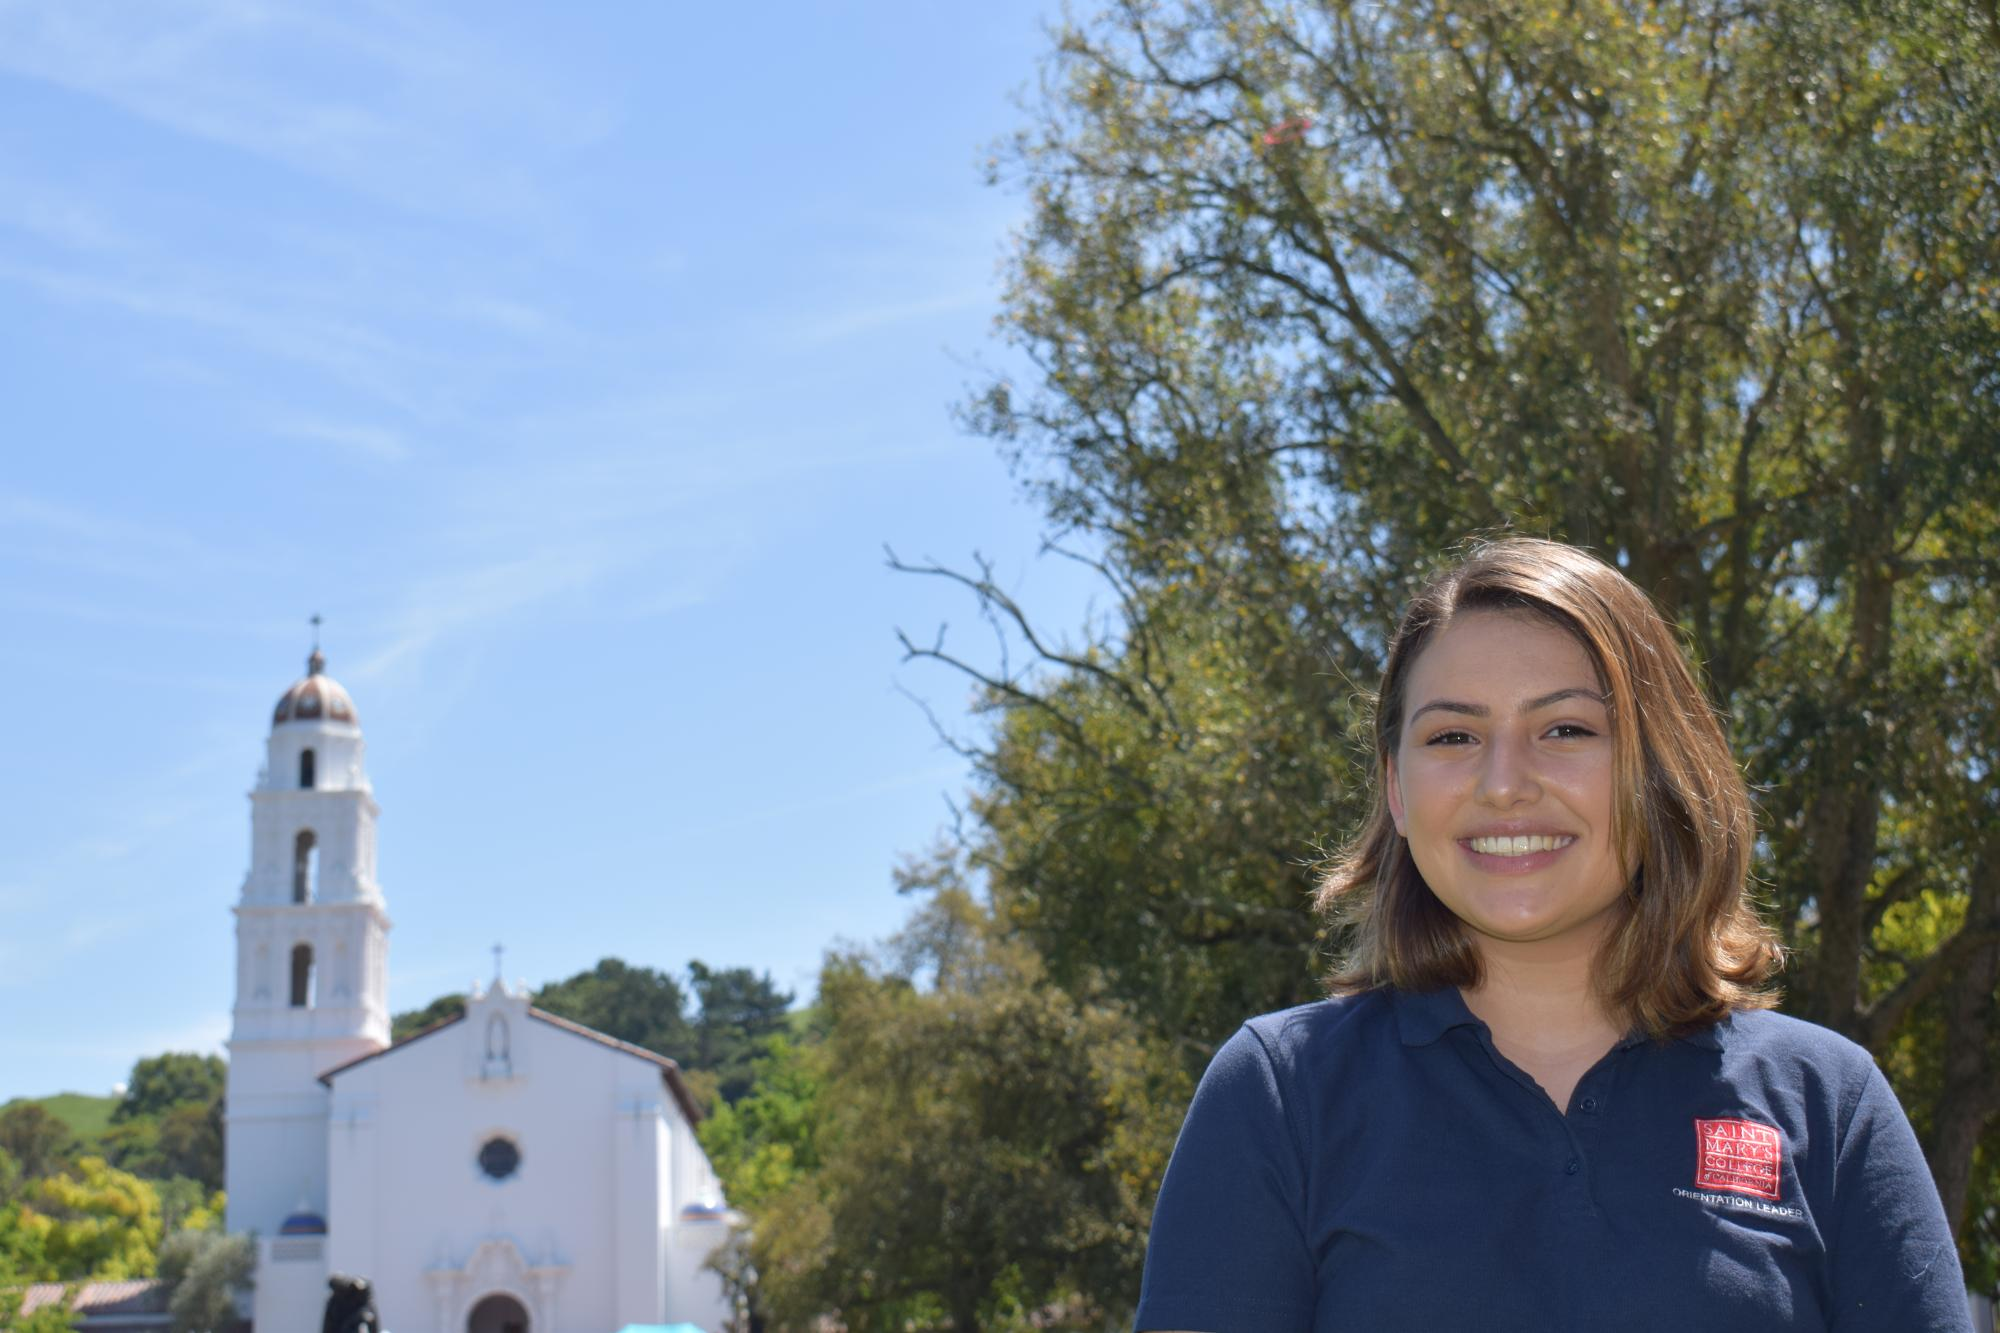 Hey, my name is Kristina and I am from Hayward, CA! I am a JCL, TFT major, involved with SMC Las Hermanas. I am so looking forward to meeting all of you!